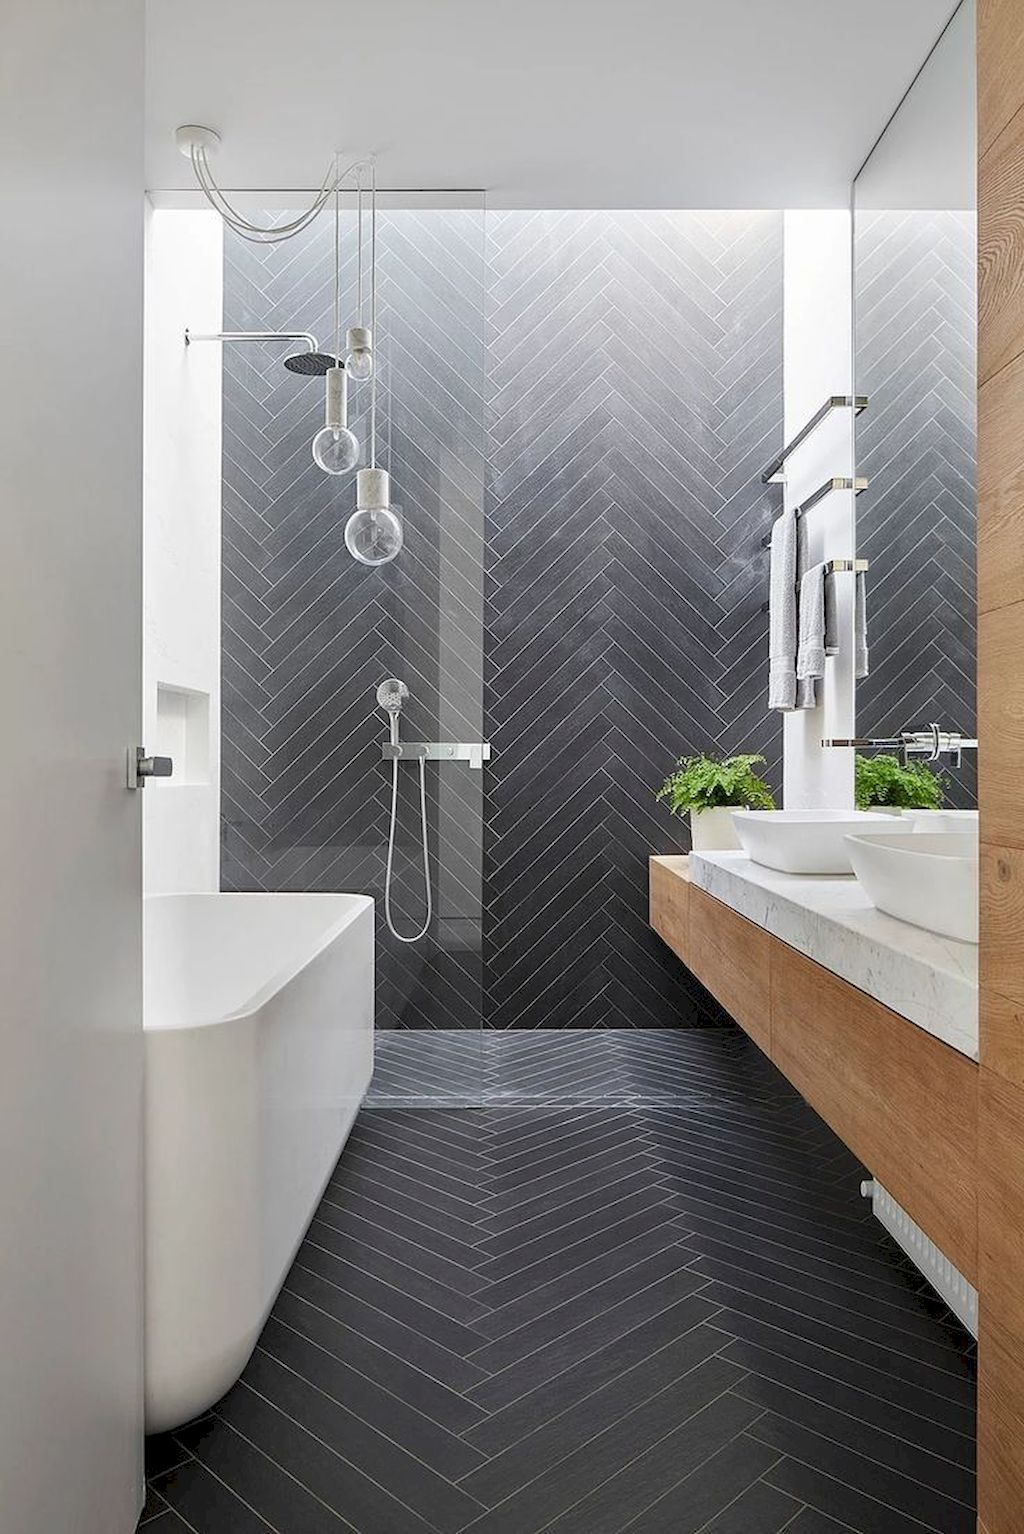 70+ Tiles Ideas for Small Bathroom - Get more Ideas in our gallery | # & Must See Bathroom Tiles Ideas - How to Configure It in Small Space ...